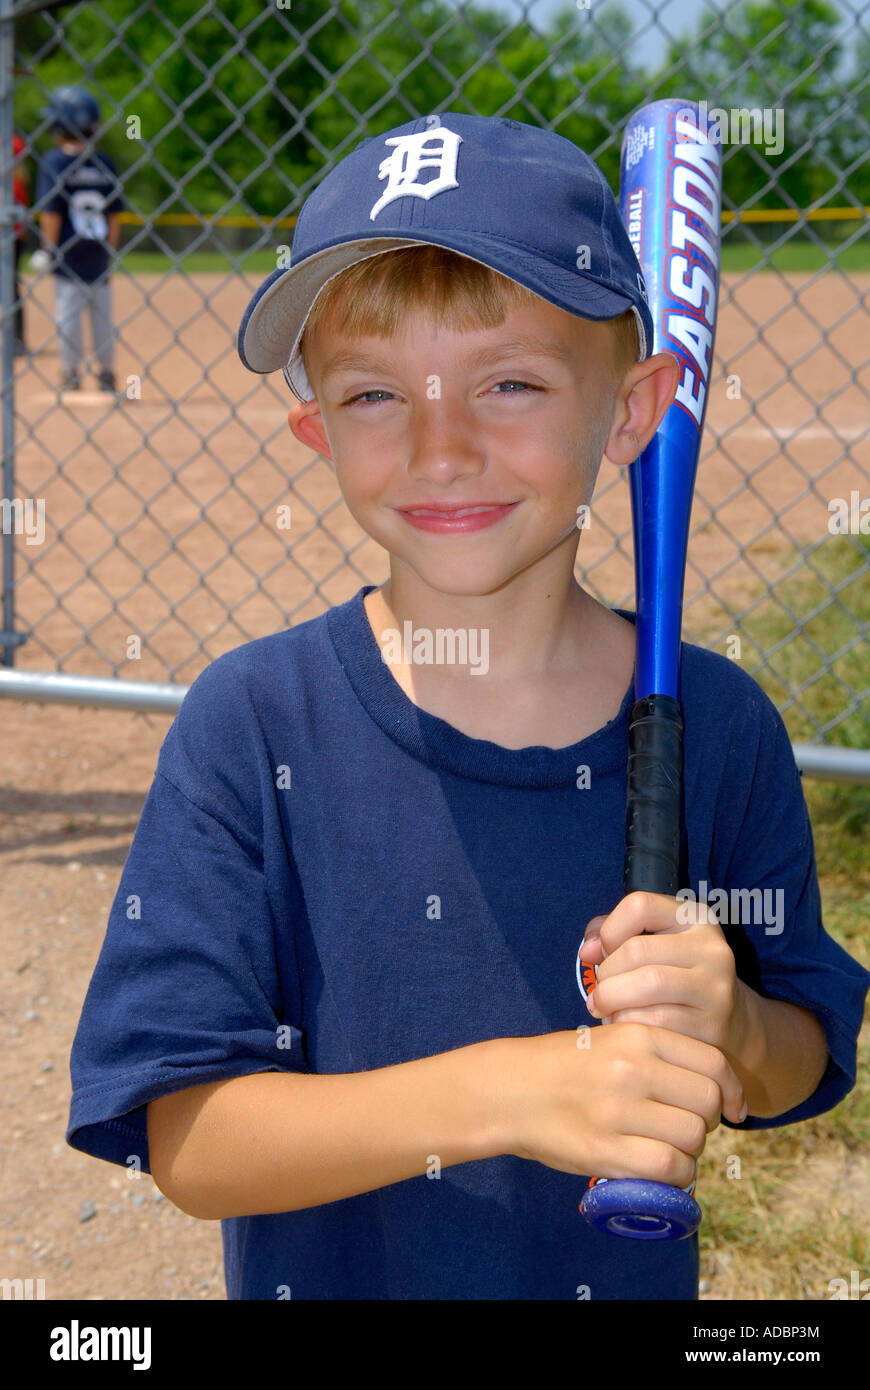 Portrait of a 6 year old t ball baseball player - Stock Image